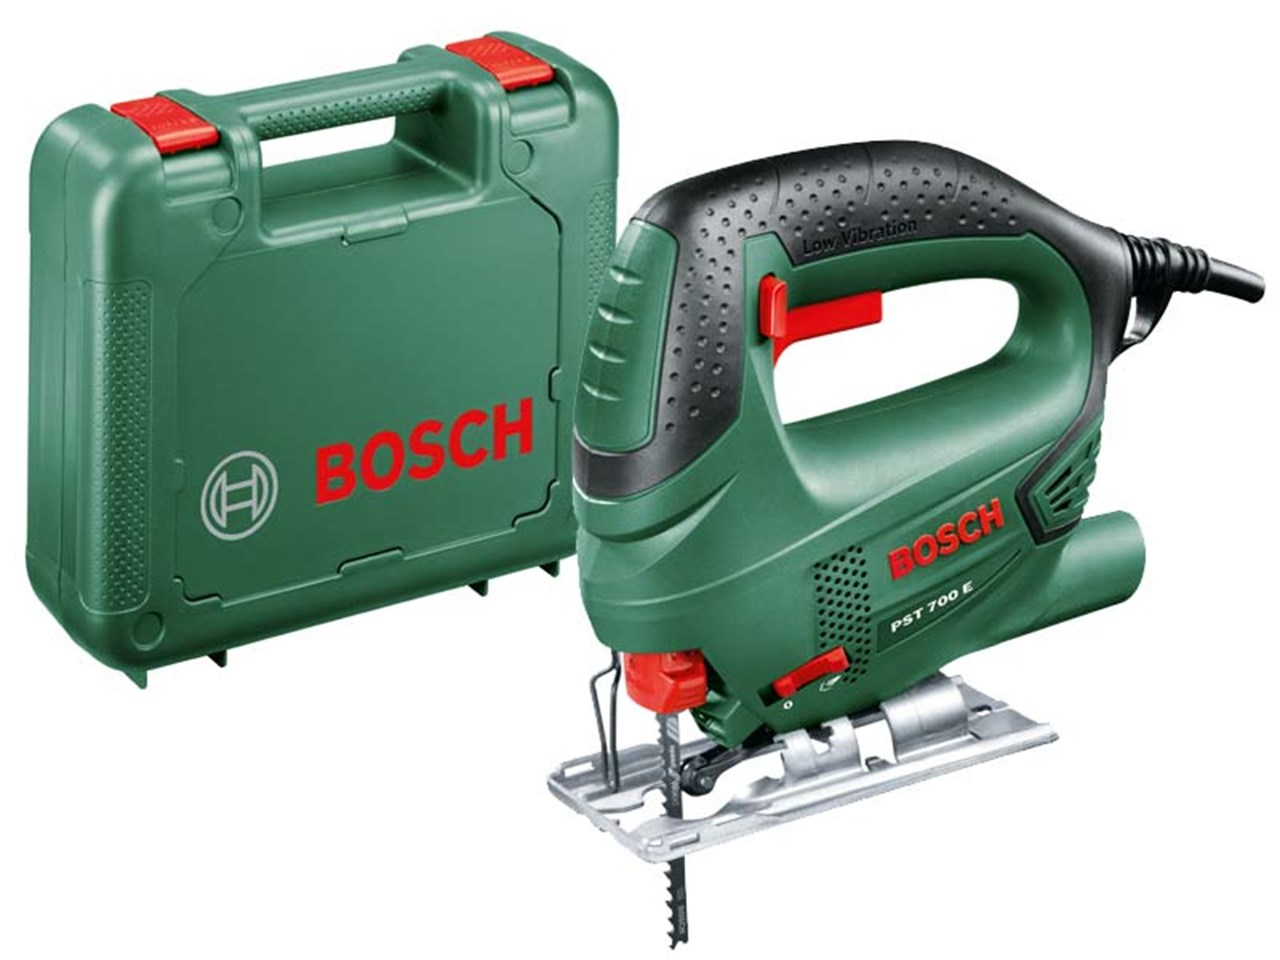 bosch green pst 700 e 240v compact jigsaw 500w. Black Bedroom Furniture Sets. Home Design Ideas